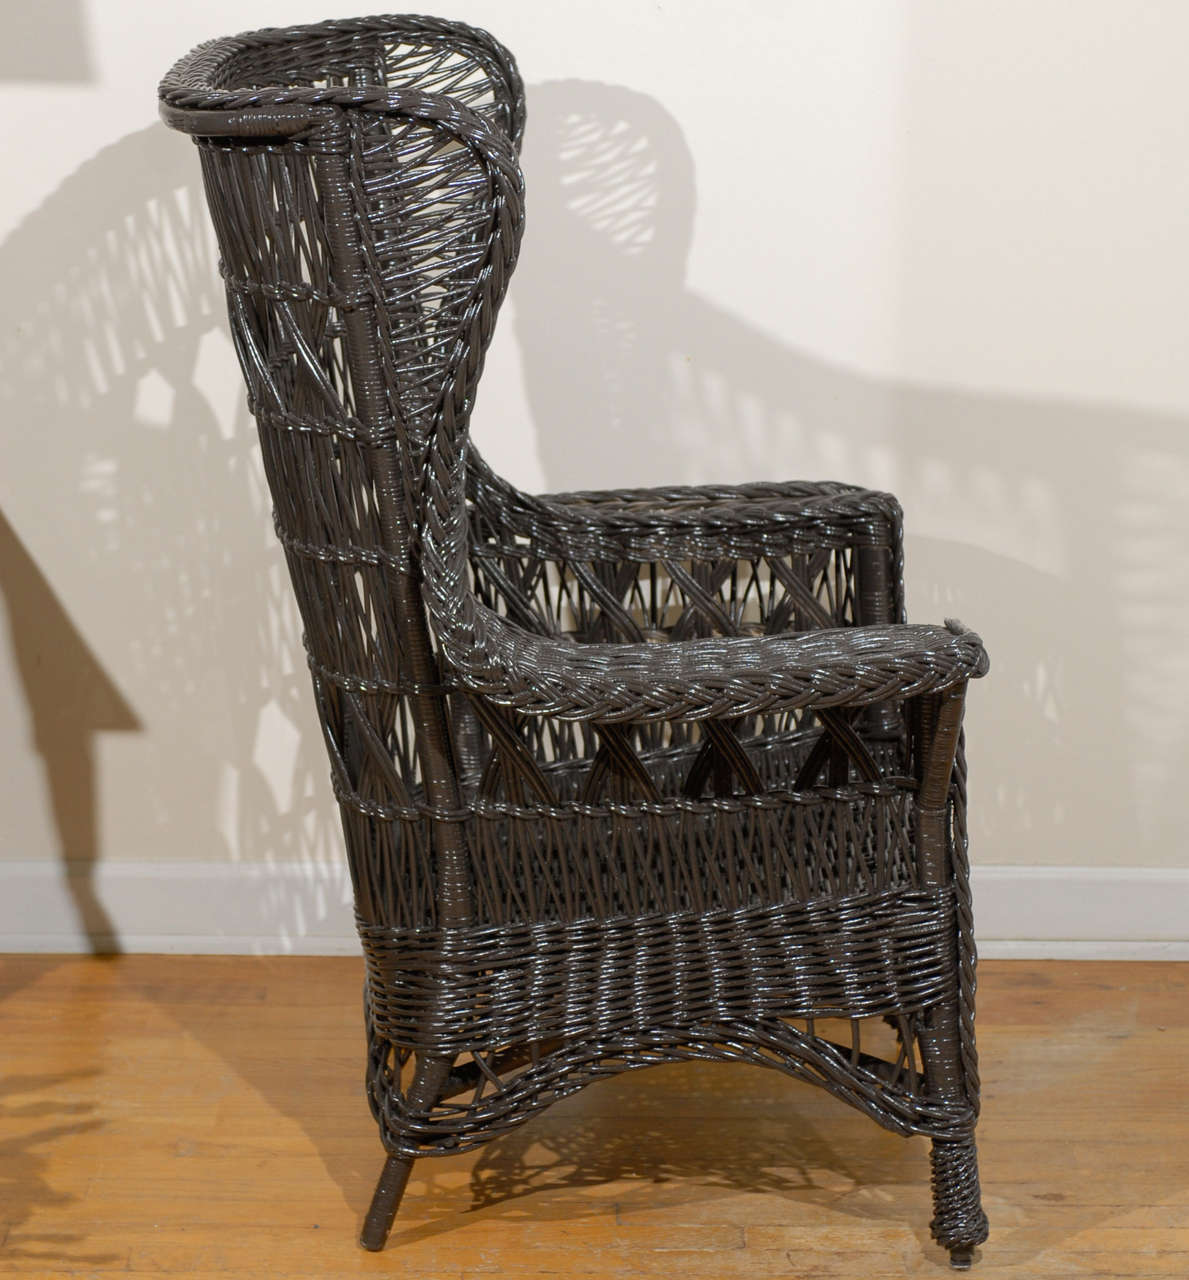 Antique American Wicker Wing Chair with Magazine Pocket For Sale 4